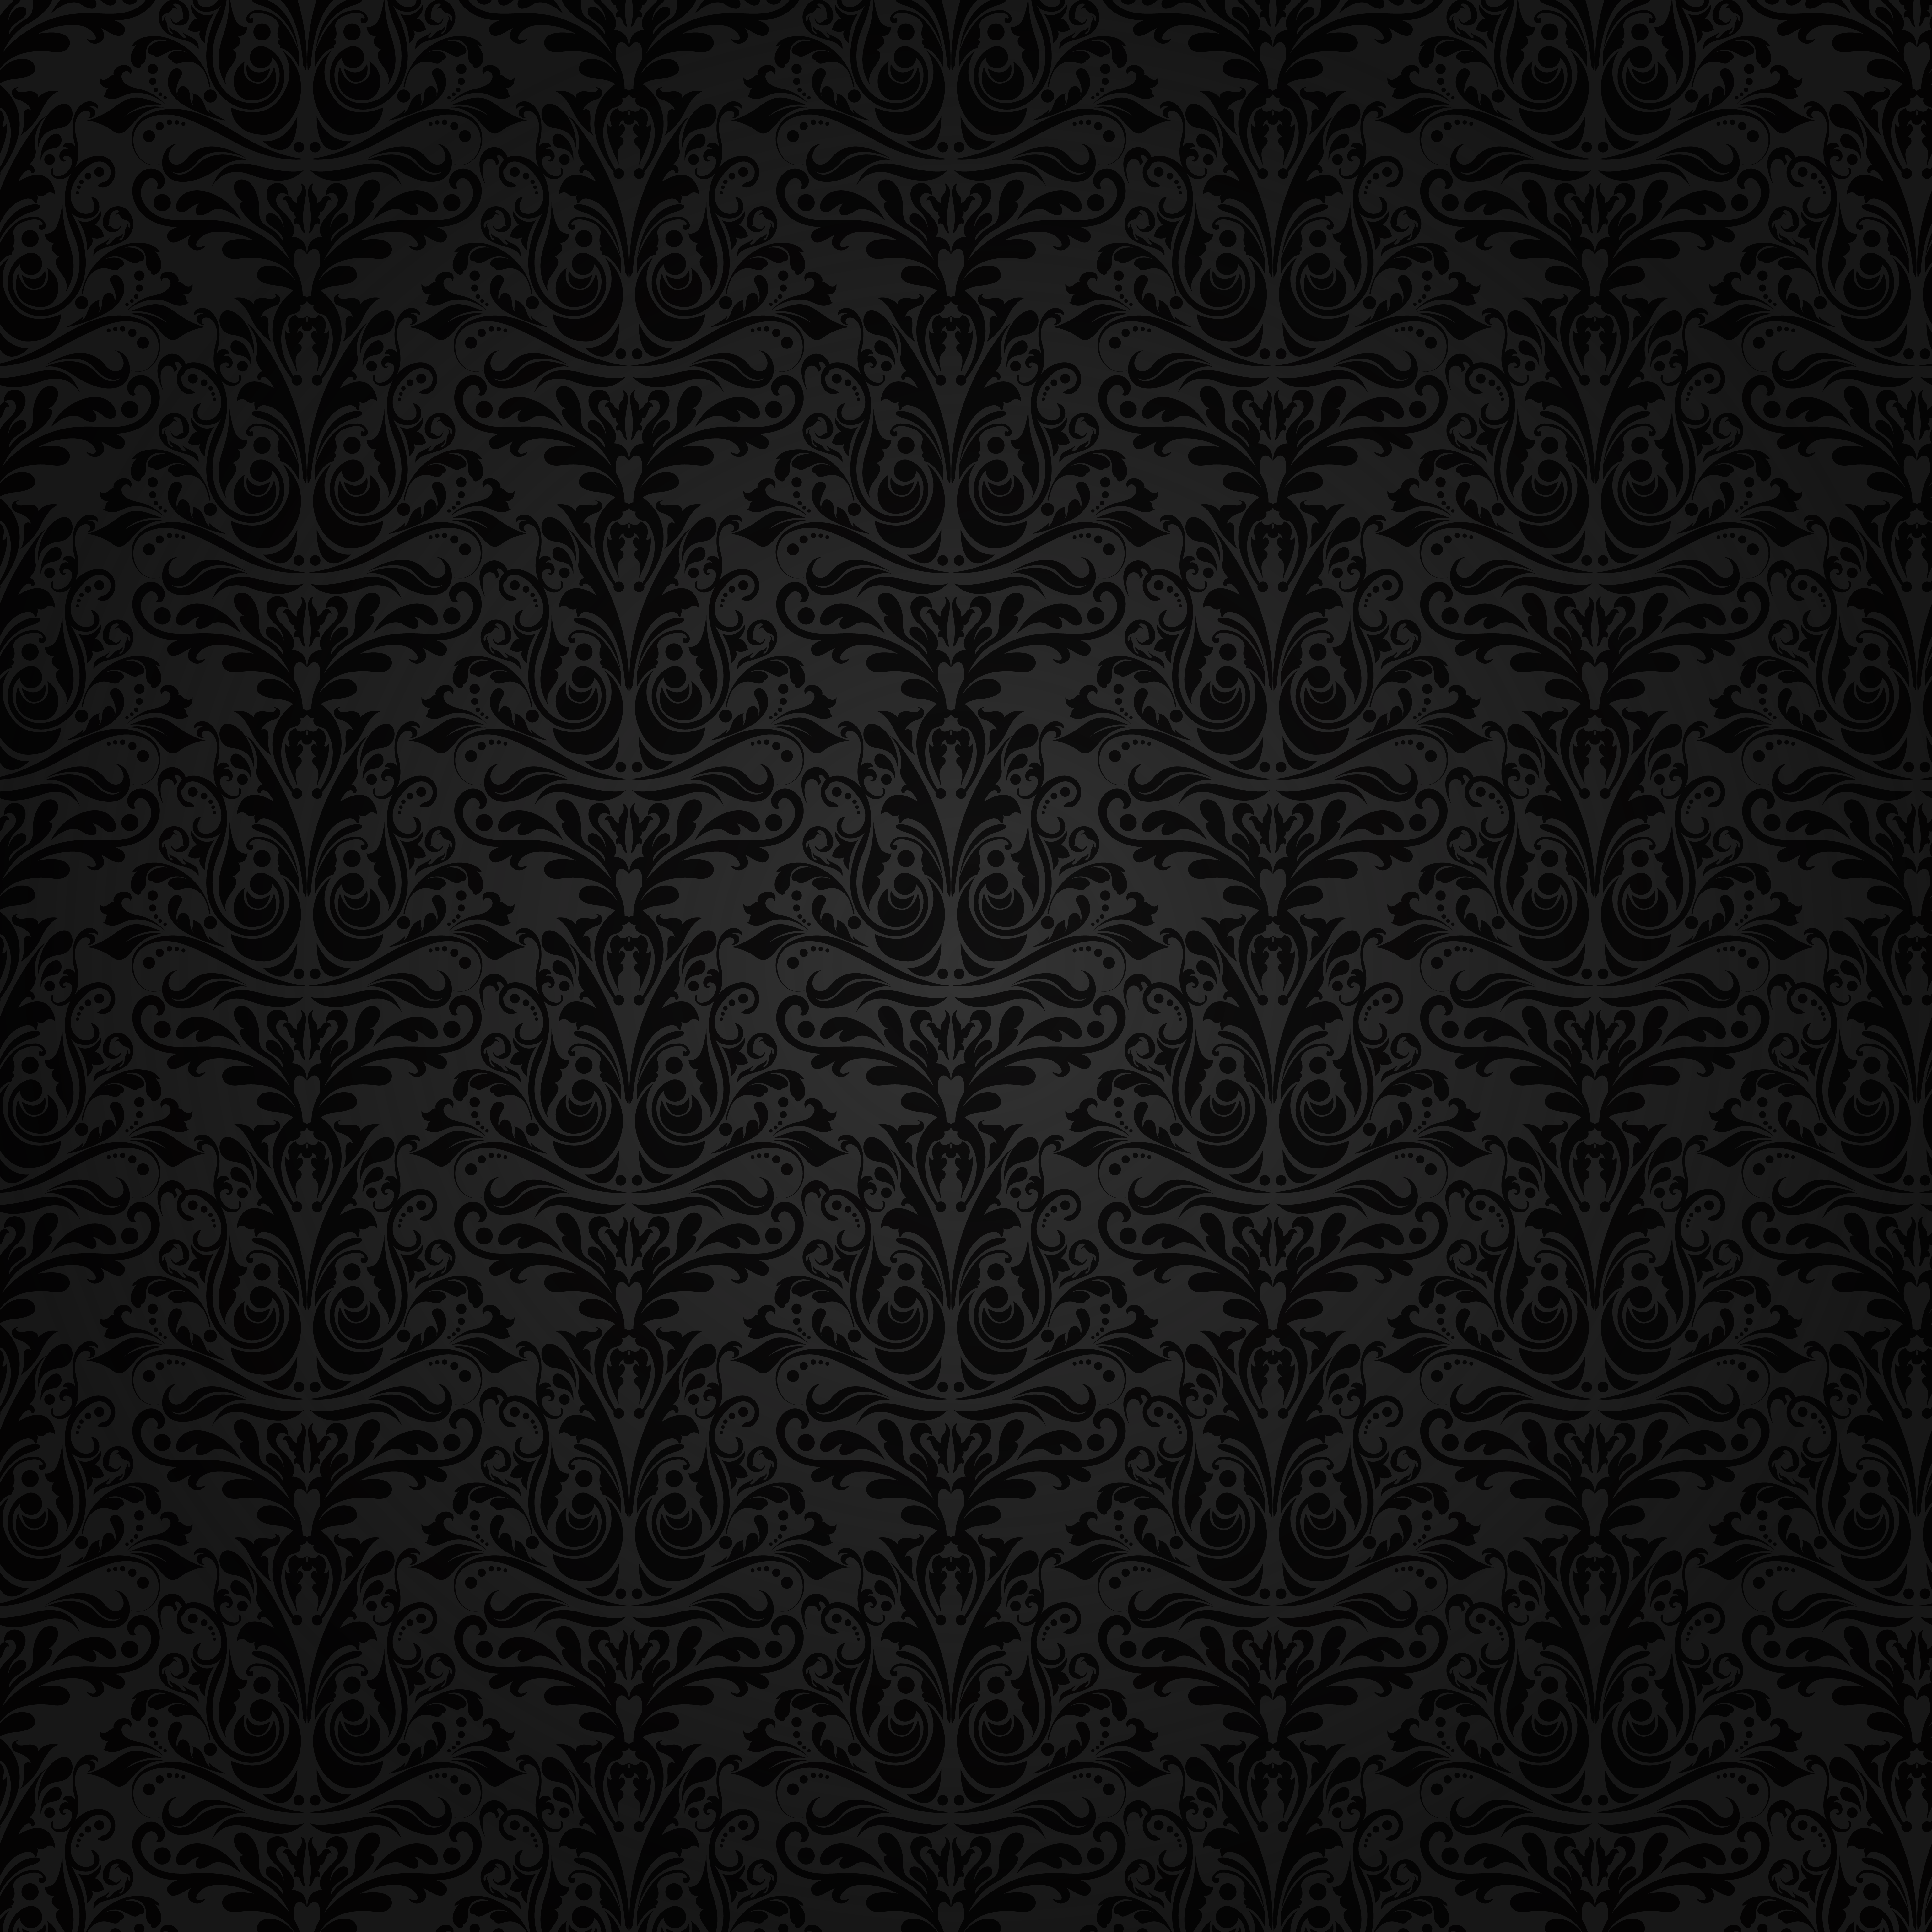 Black Background with Ornaments.